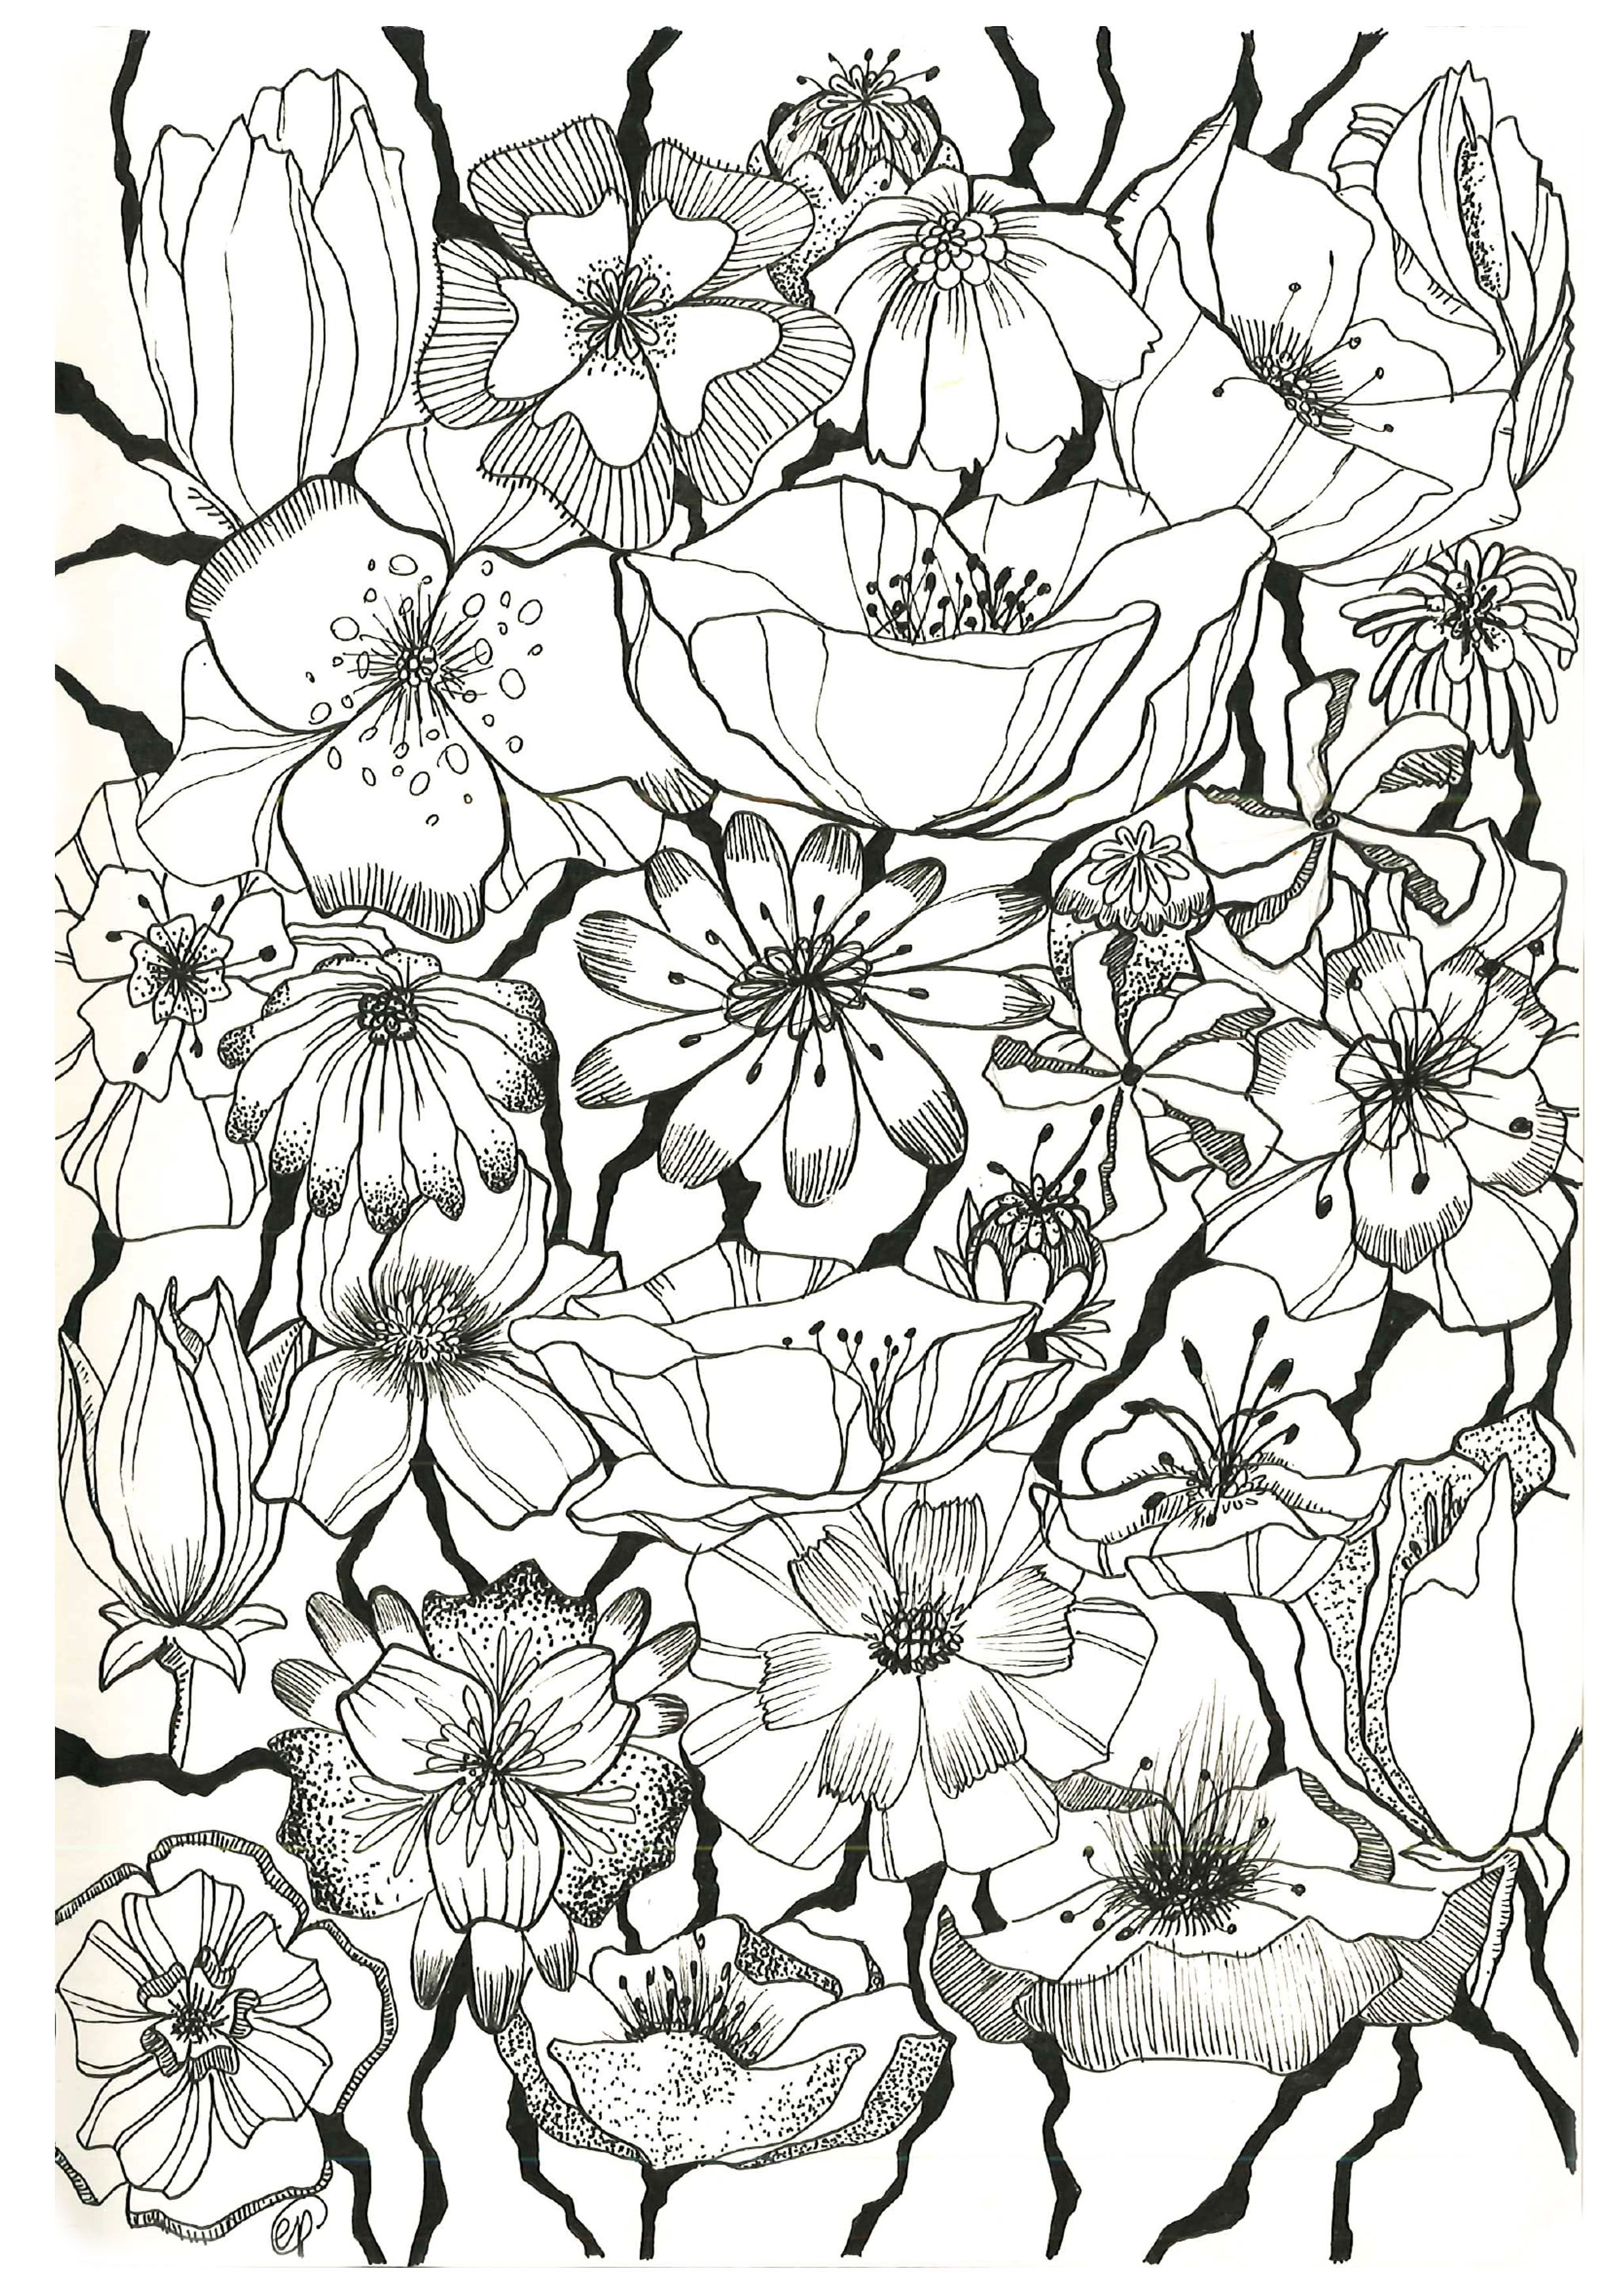 Flower Sketch Pen On Paper May 2015 Ep Designer Adult Coloring PagesColoring SheetsColoring